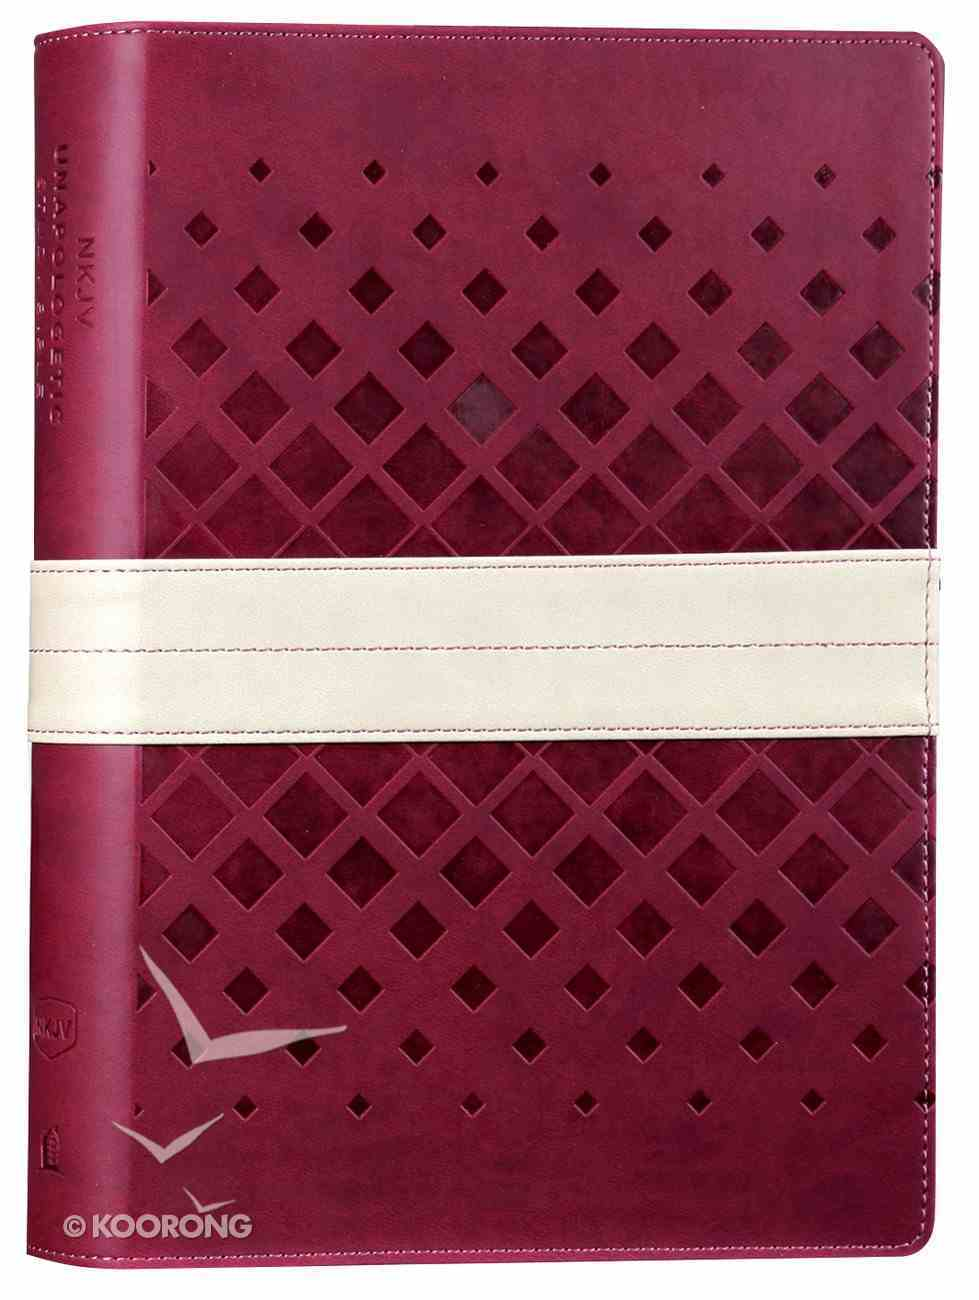 NKJV Unapologetic Study Bible Red/Tan (Red Letter Edition) Imitation Leather